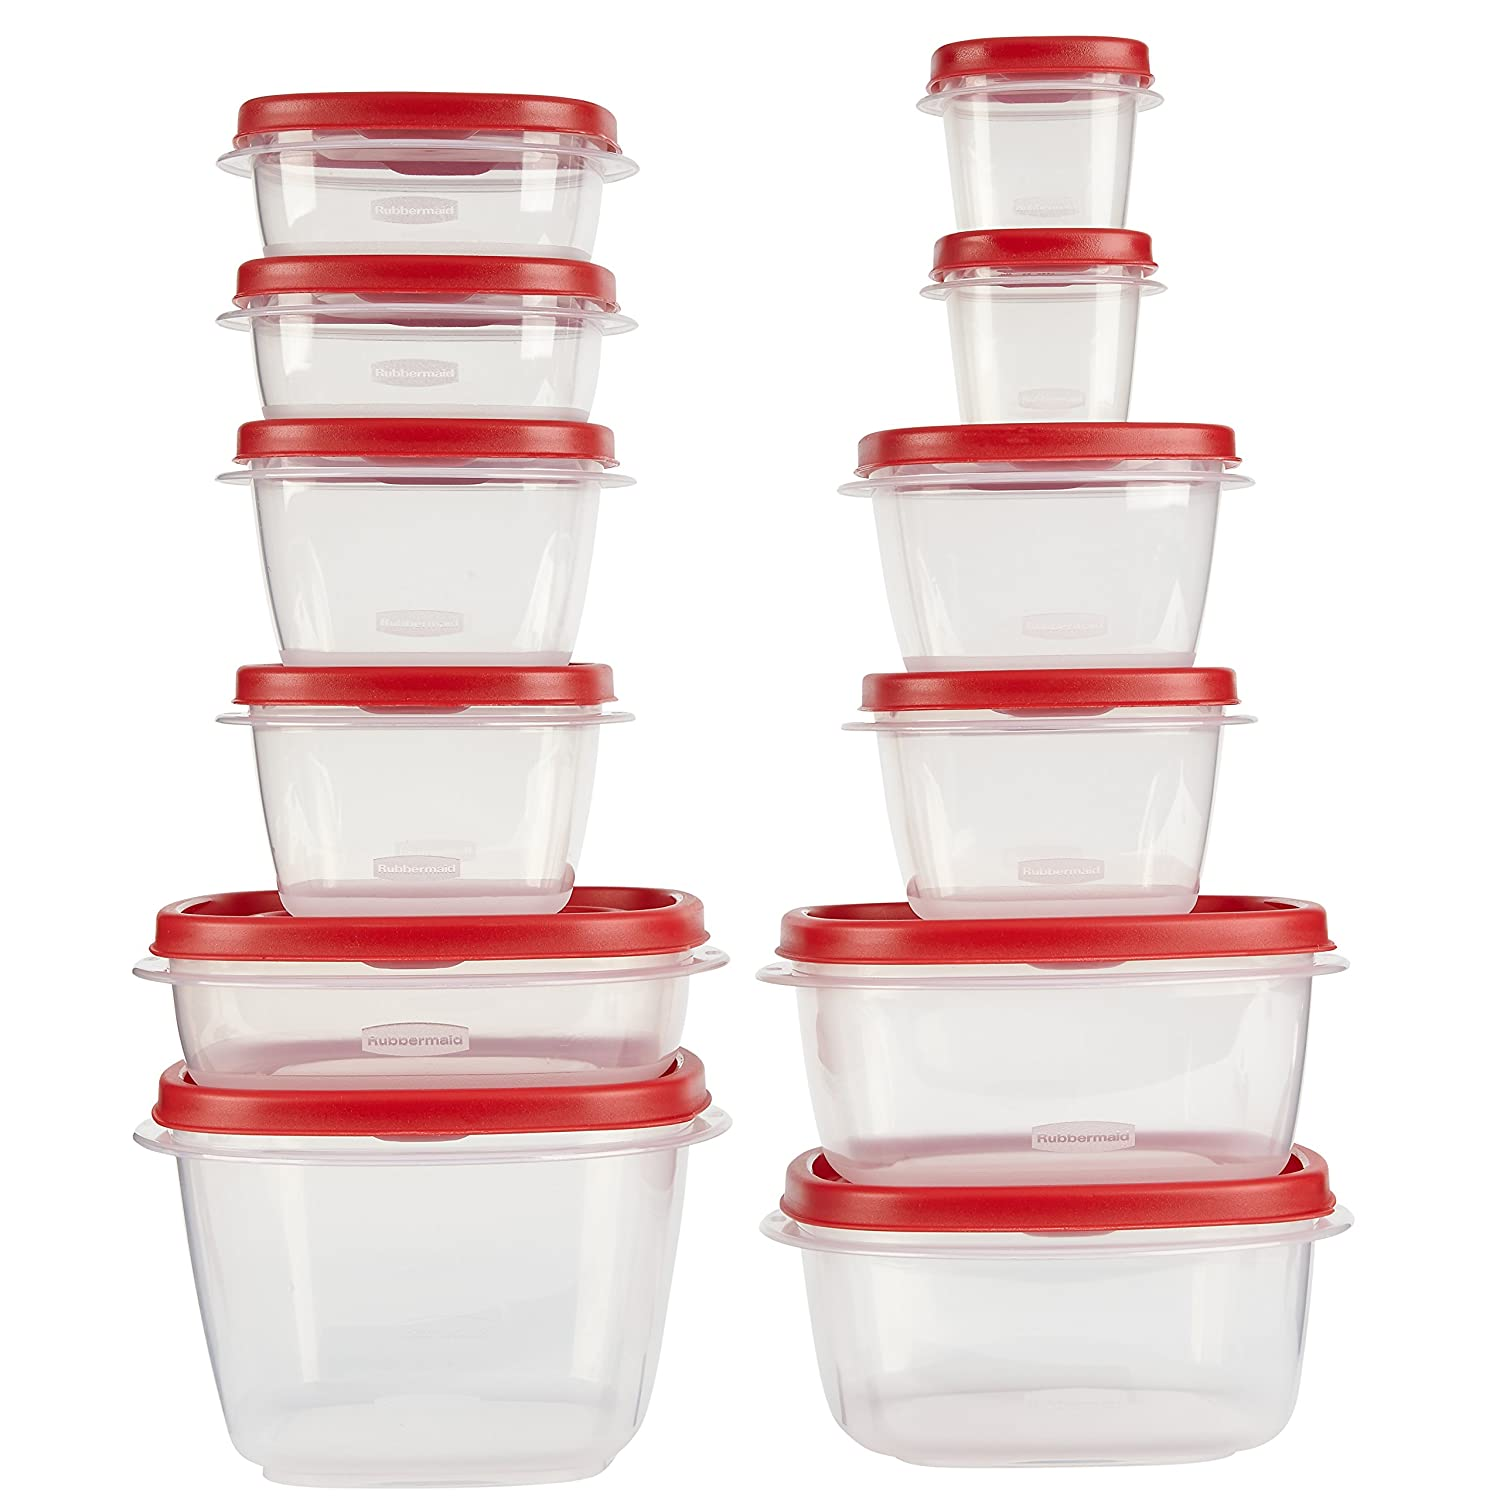 Amazon.com Rubbermaid Easy Find Lids Food Storage Containers Racer Red Set of 24 7J98 Kitchen Storage And Organization Products Kitchen u0026 Dining  sc 1 st  Amazon.com & Amazon.com: Rubbermaid Easy Find Lids Food Storage Containers Racer ...